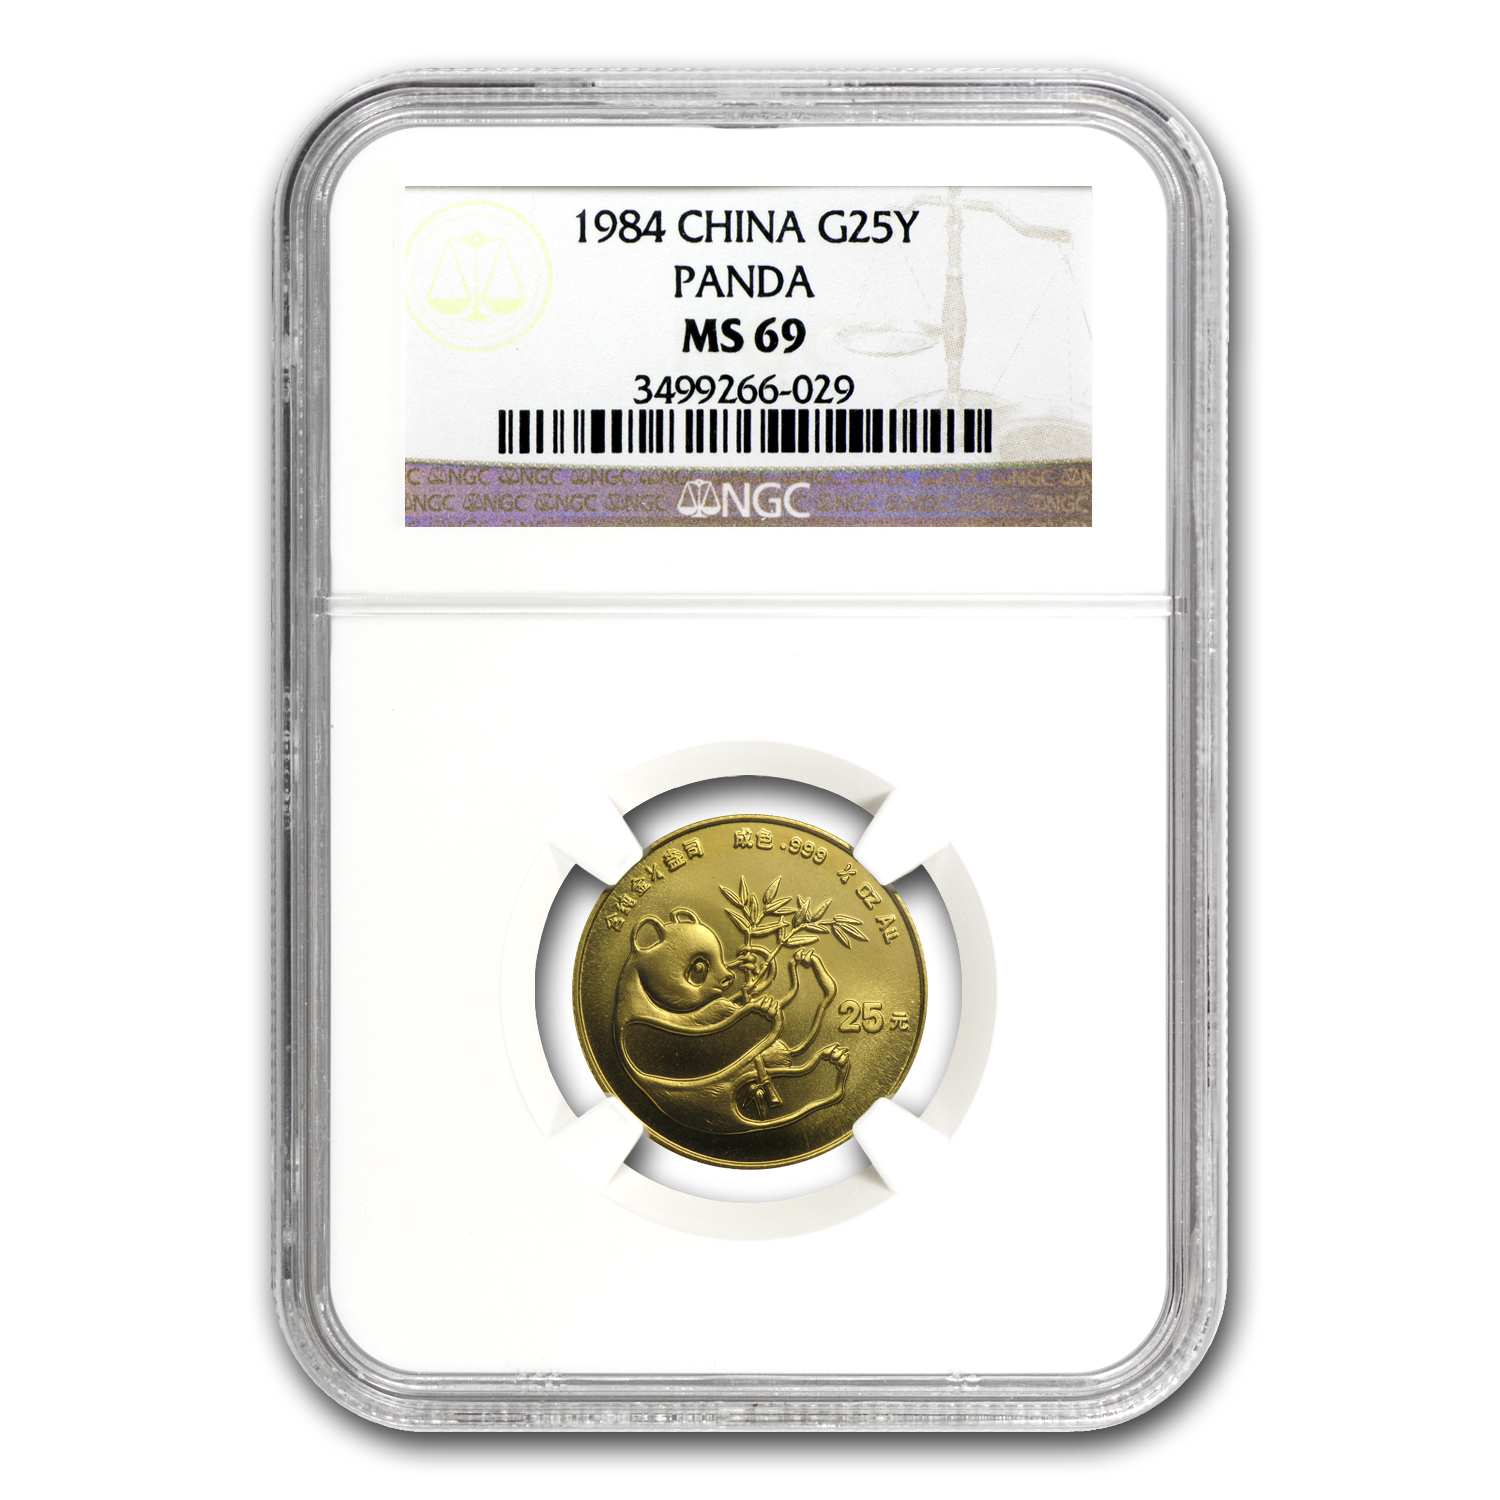 1984 (1/4 oz) Gold Chinese Panda - MS-69 NGC